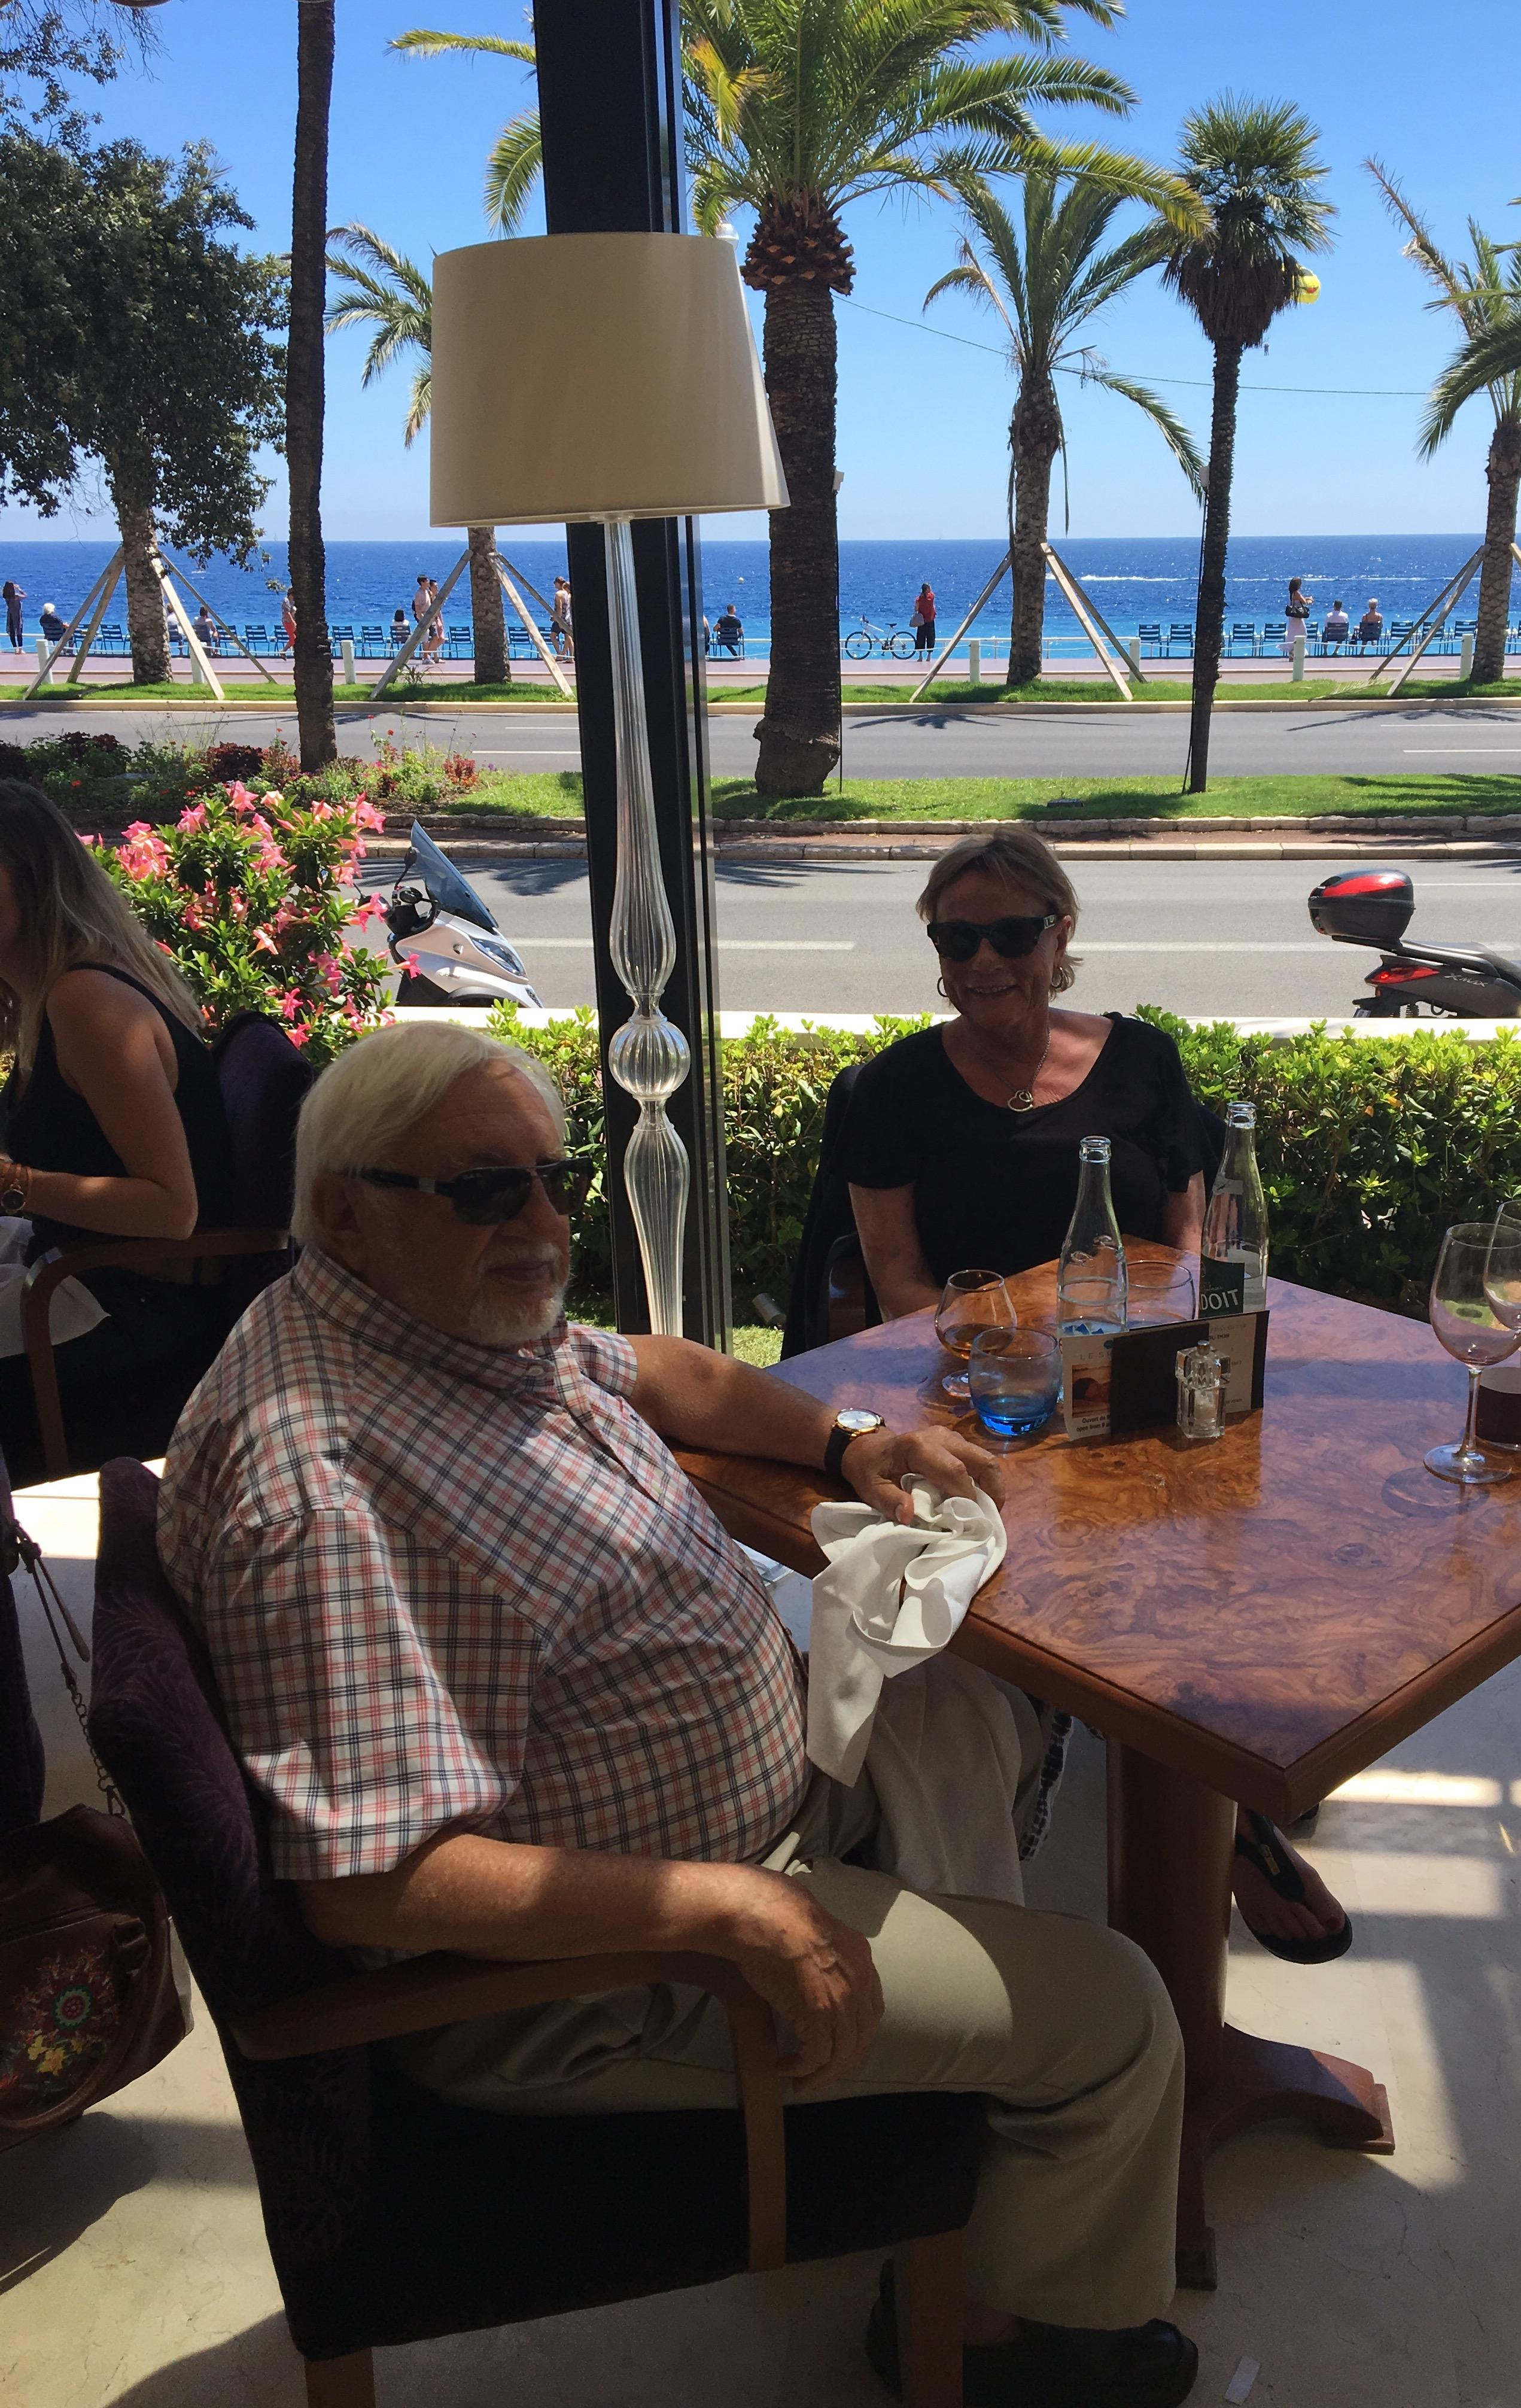 Lunch on the Westminster terrace overlooking the Promenade des Anglasis